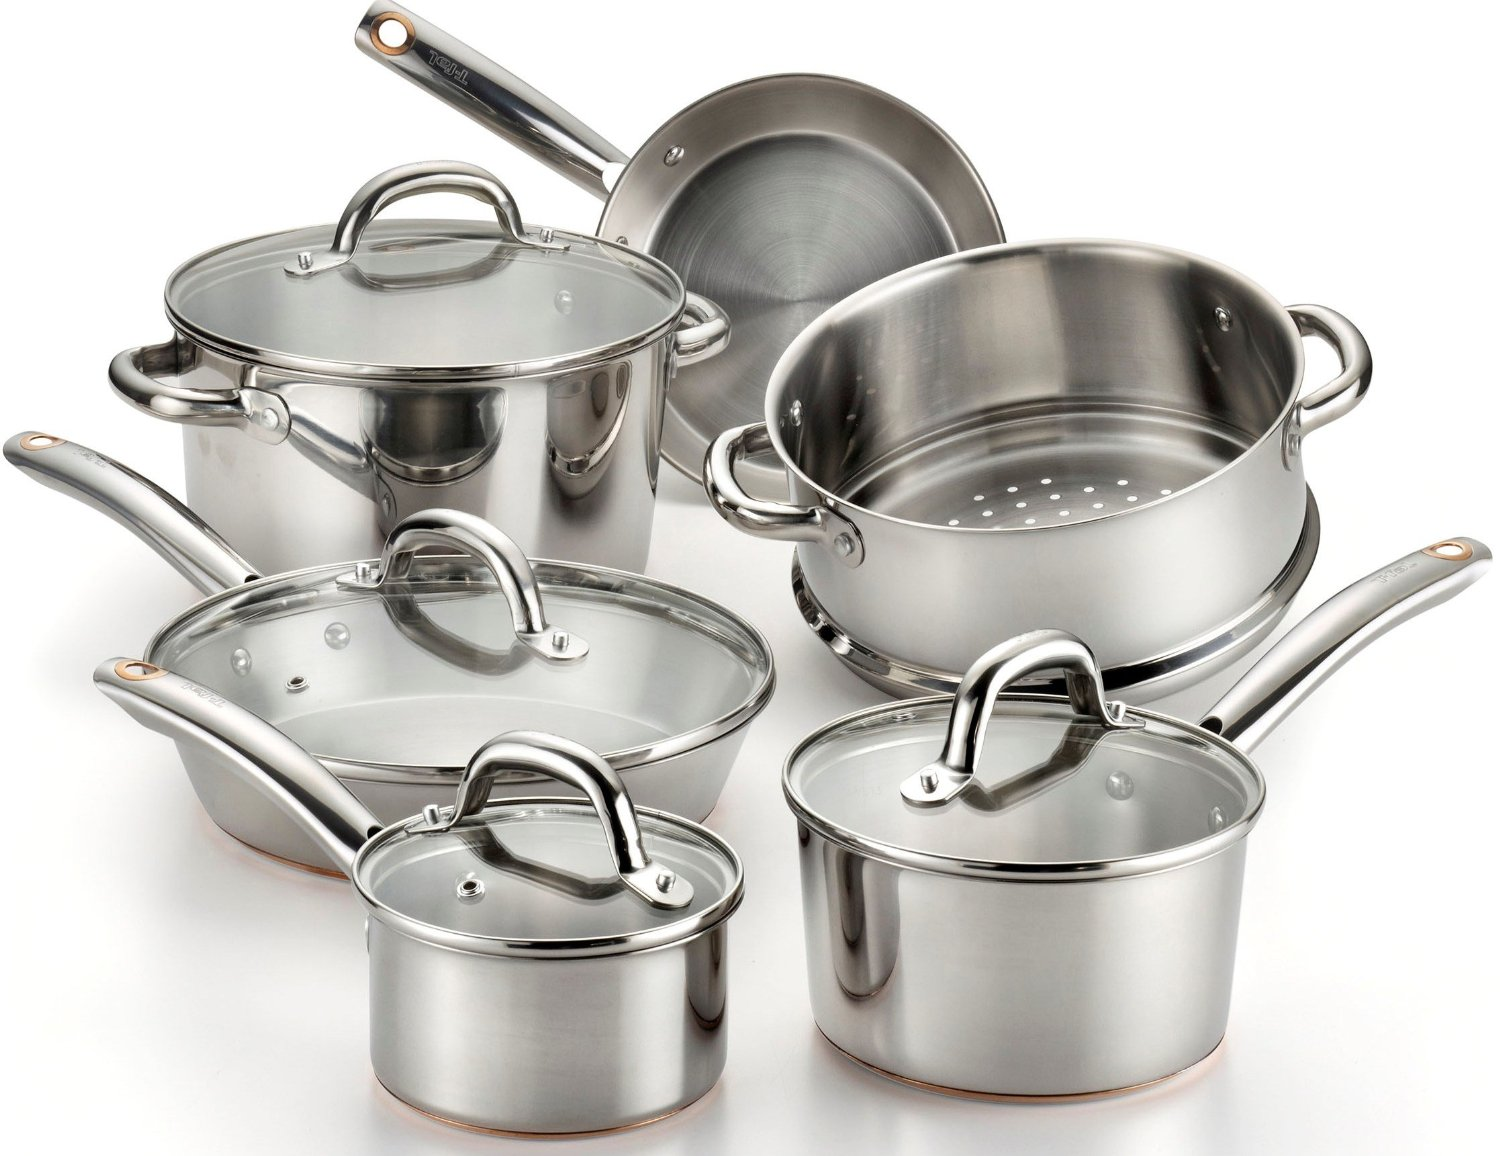 Best stainless steel cookware reviews buying guide for Kitchen set items